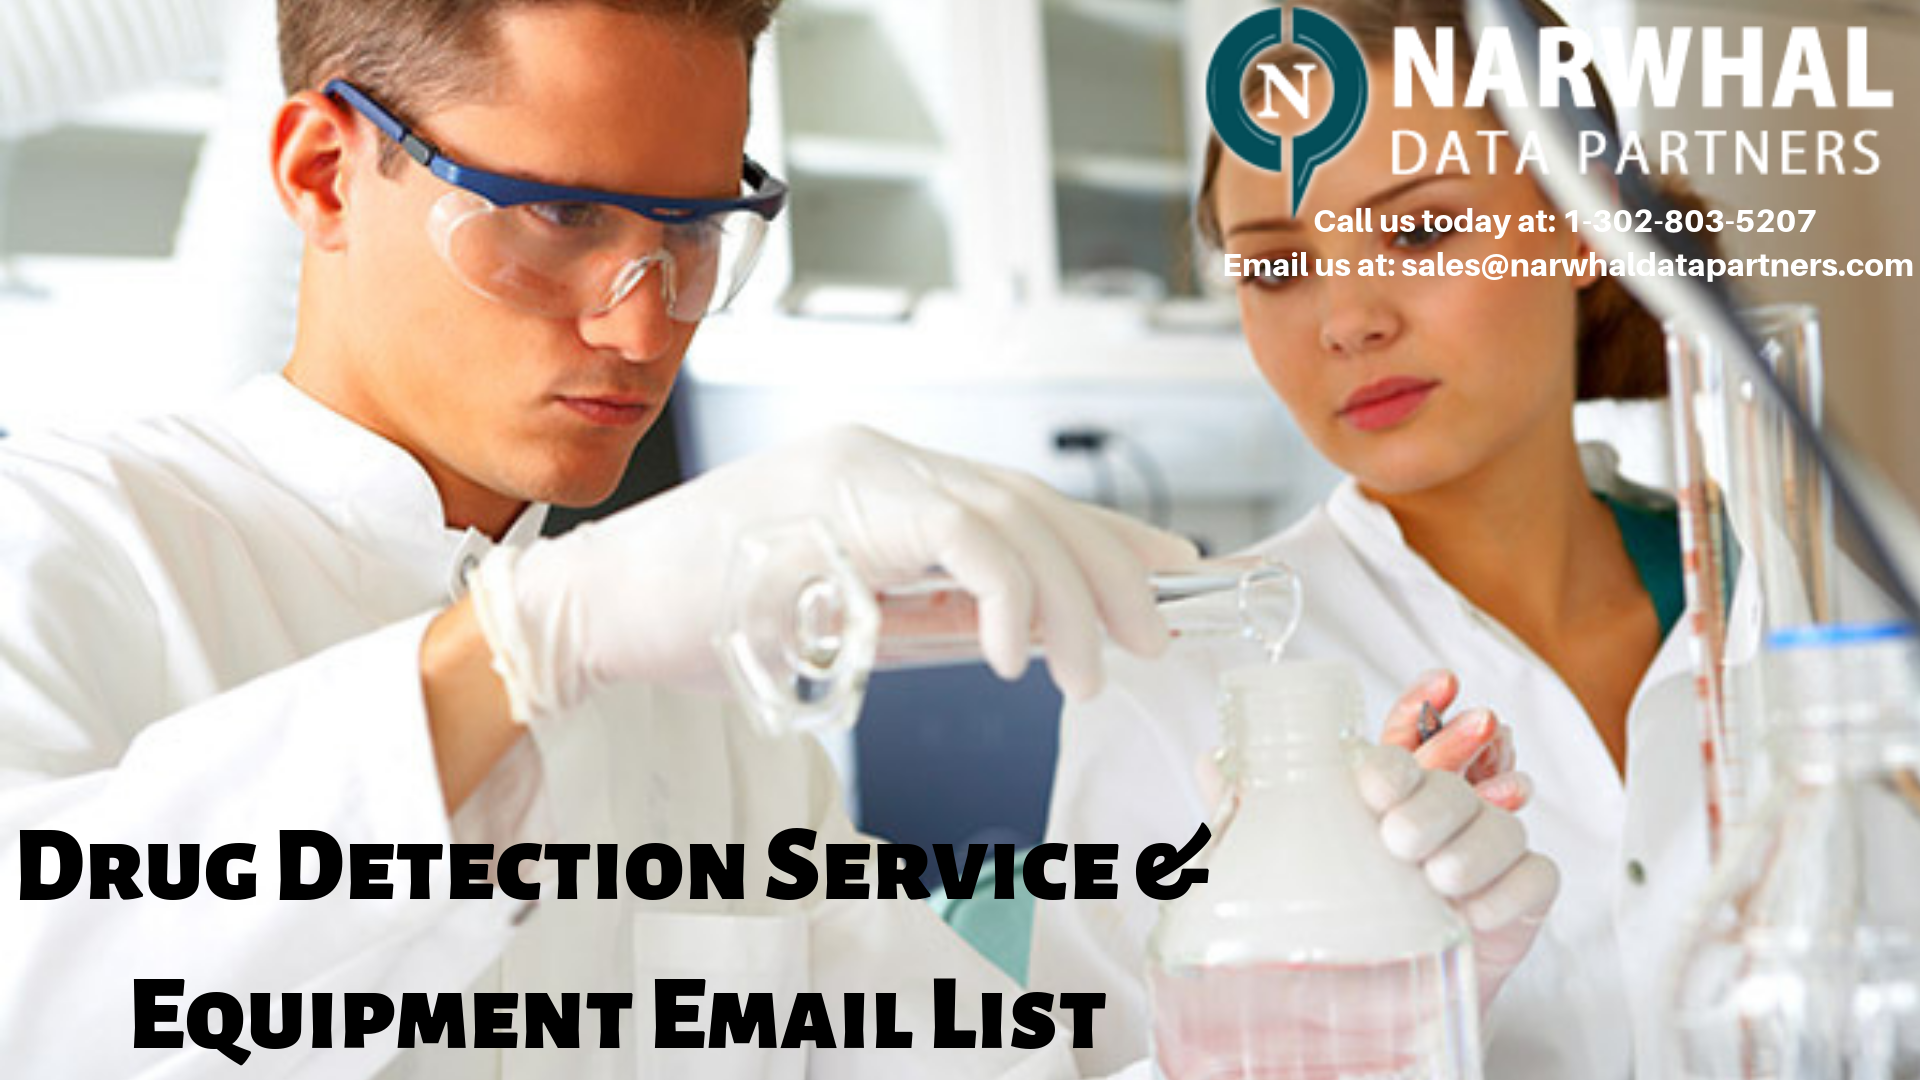 http://narwhaldatapartners.com/drug-detection-service-and-equipment-email-list.html